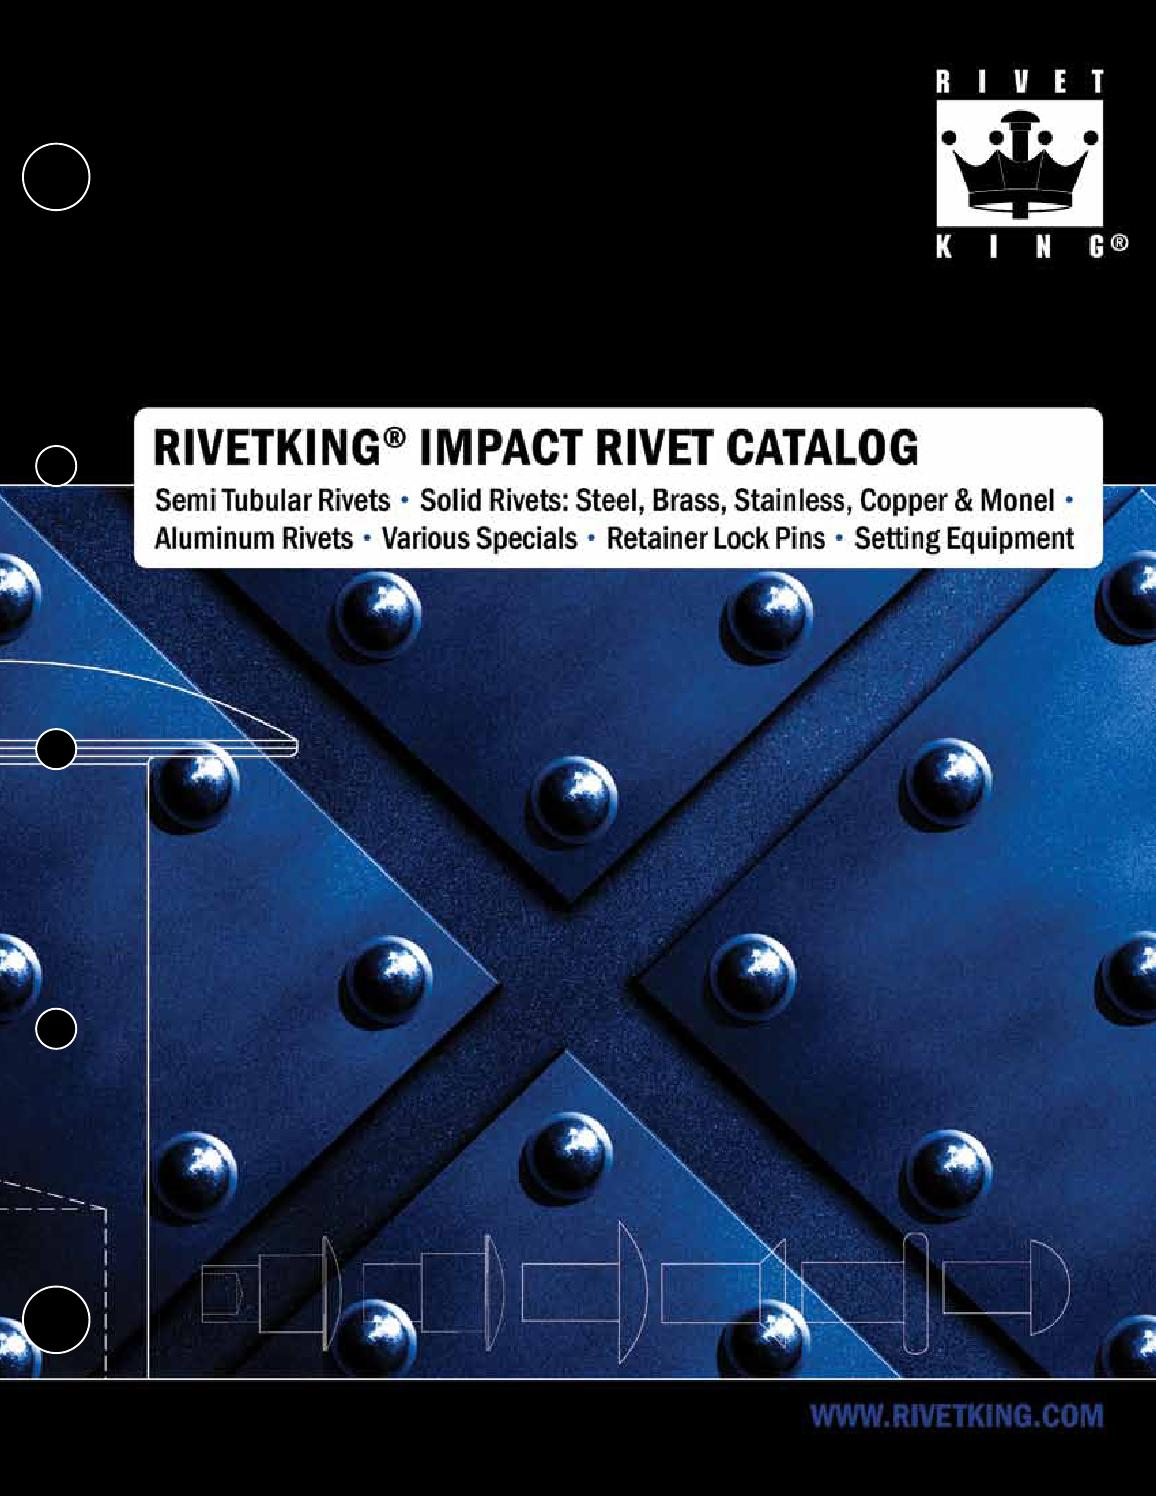 Rivetking Impact Rivet Catalog By Industrial Rivet